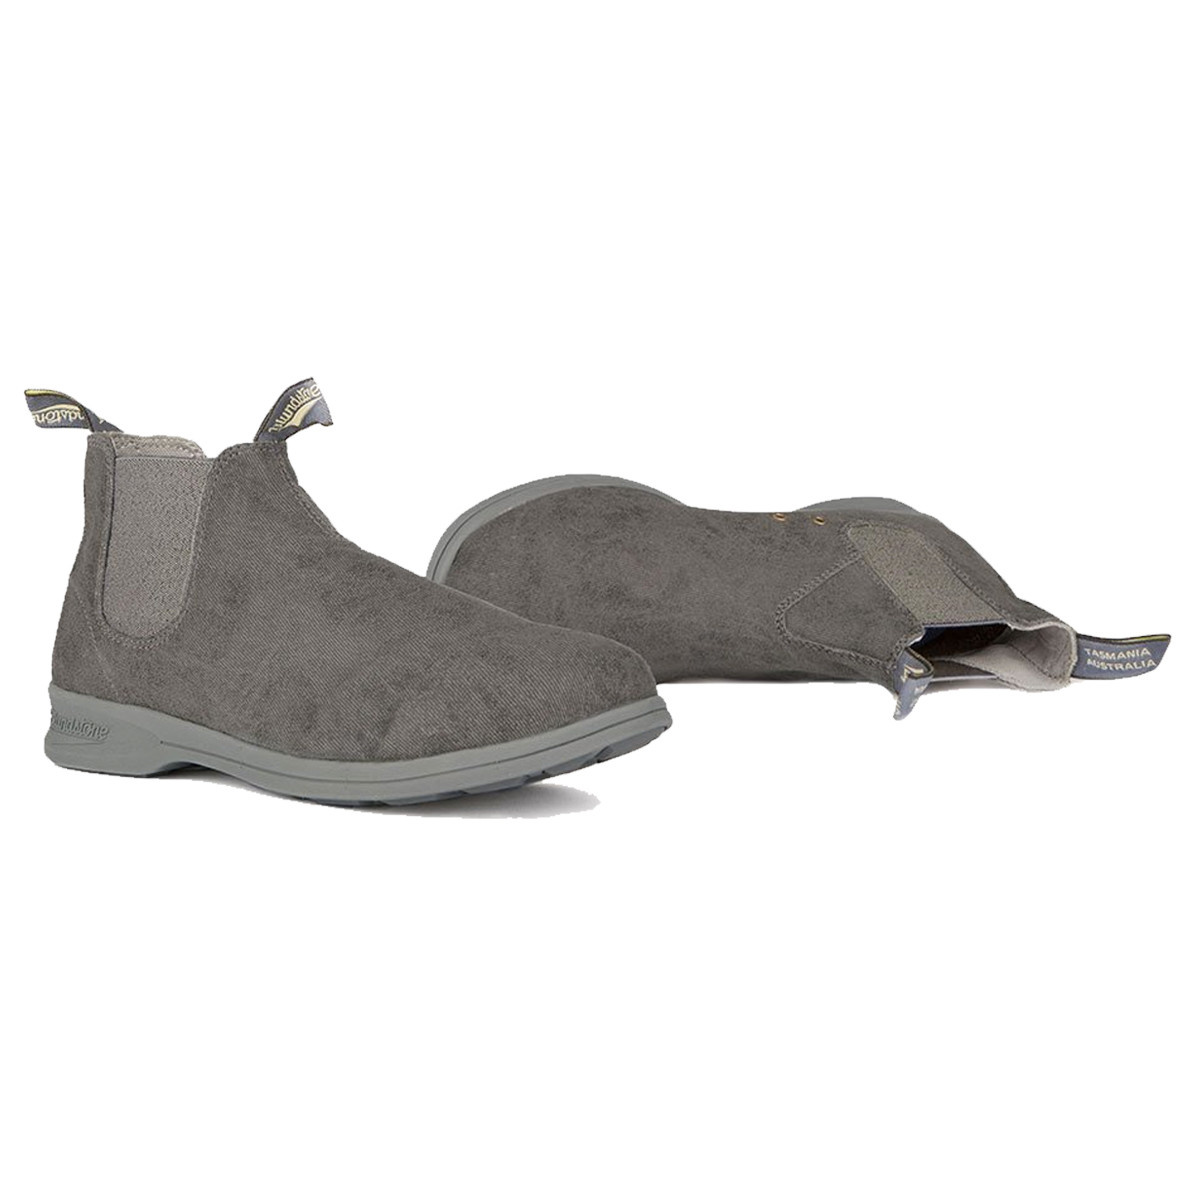 Blundstone Blundstone 1368 Unisex Canvas Charcoal